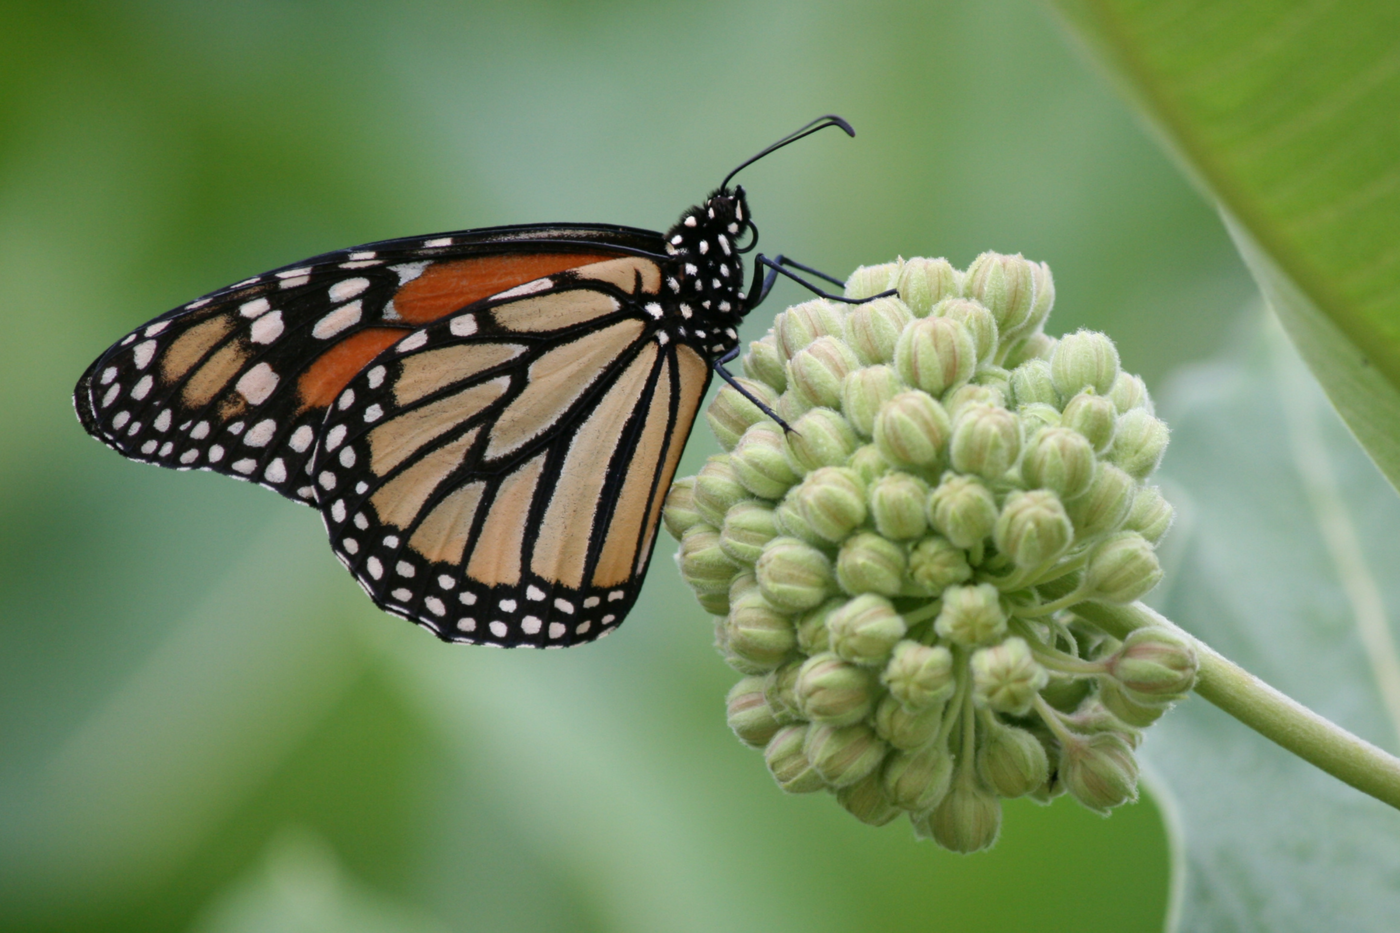 Close-up of an orange and black butterfly perched on a group of small, unopened flowers